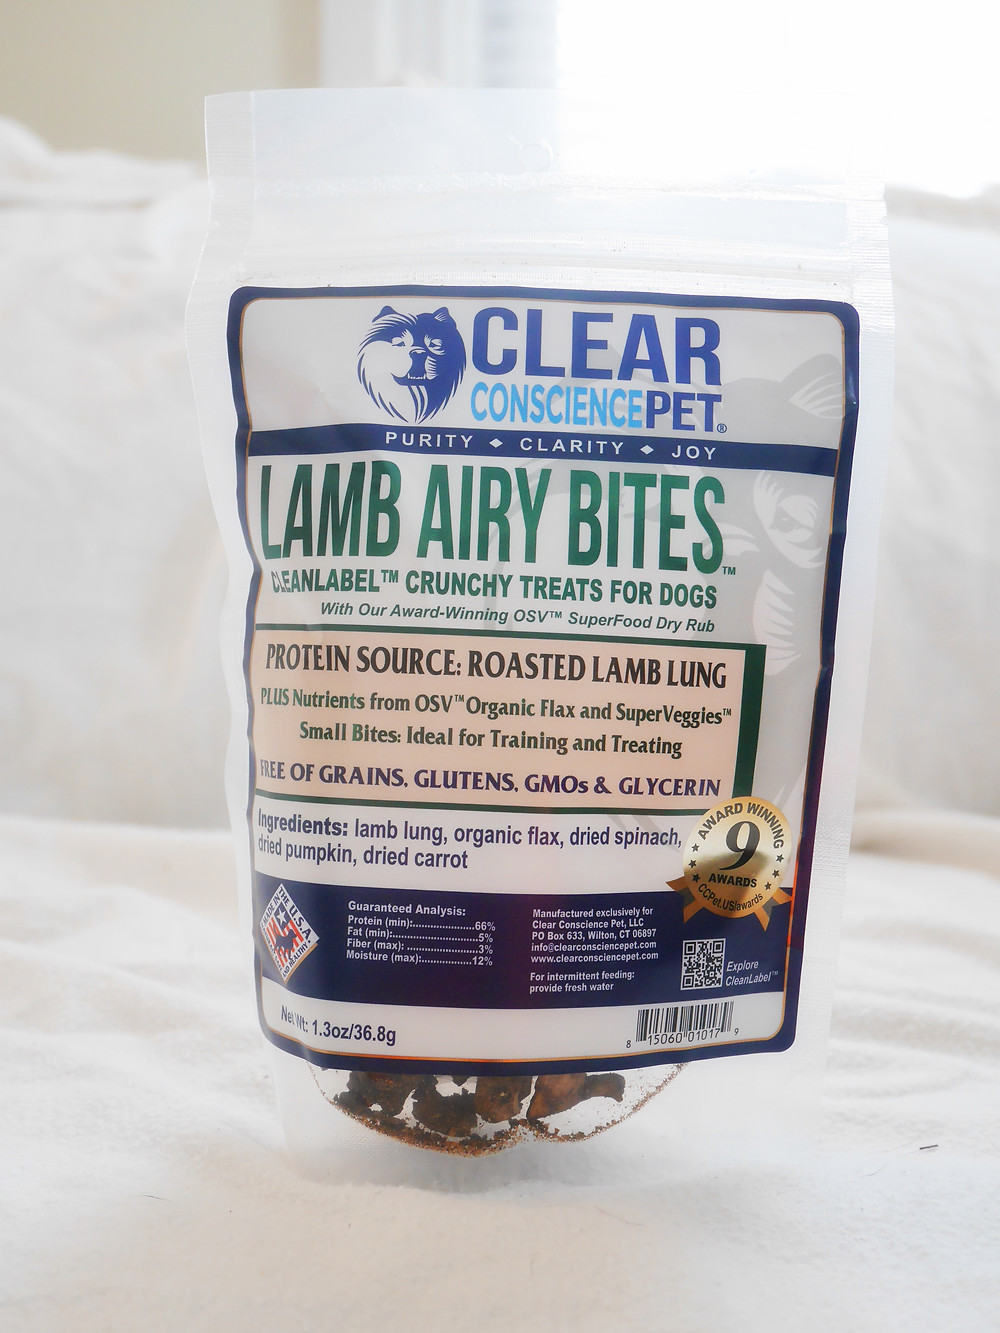 Lamb Airy Bites by Clear Conscience Pet